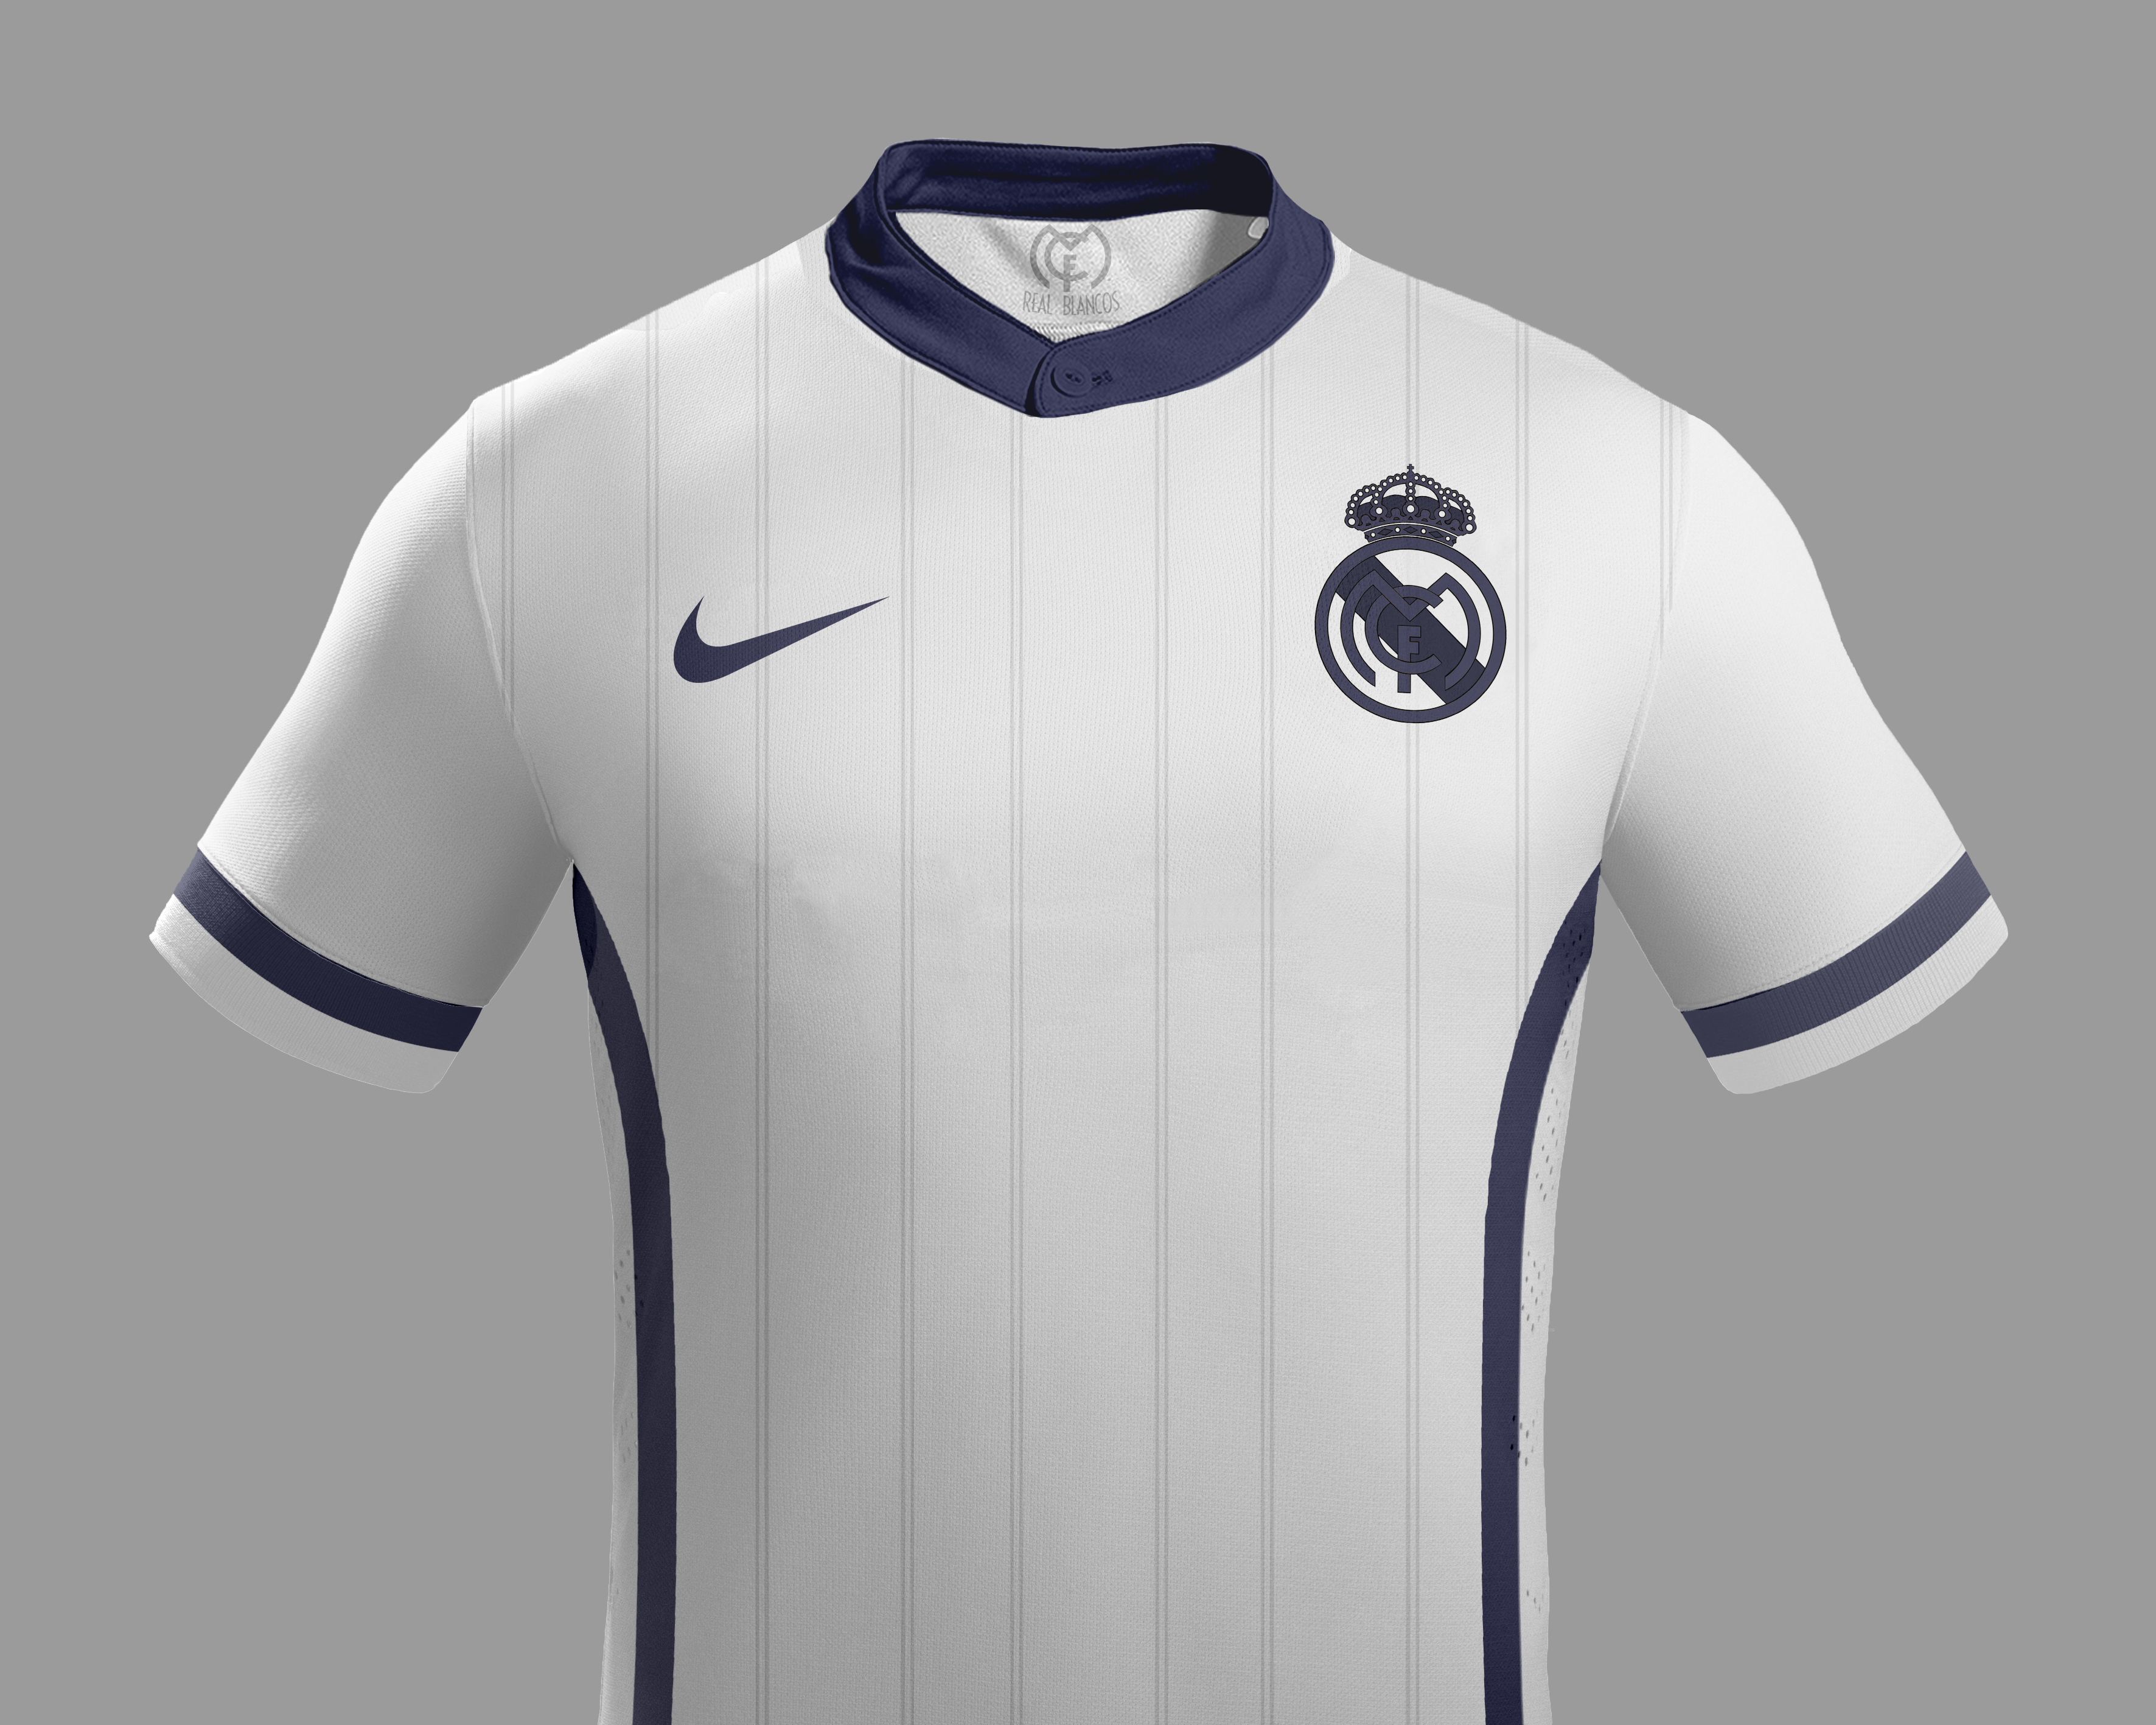 a3e15c0a8 Real Madrid 2015 2016 Home   With Nike